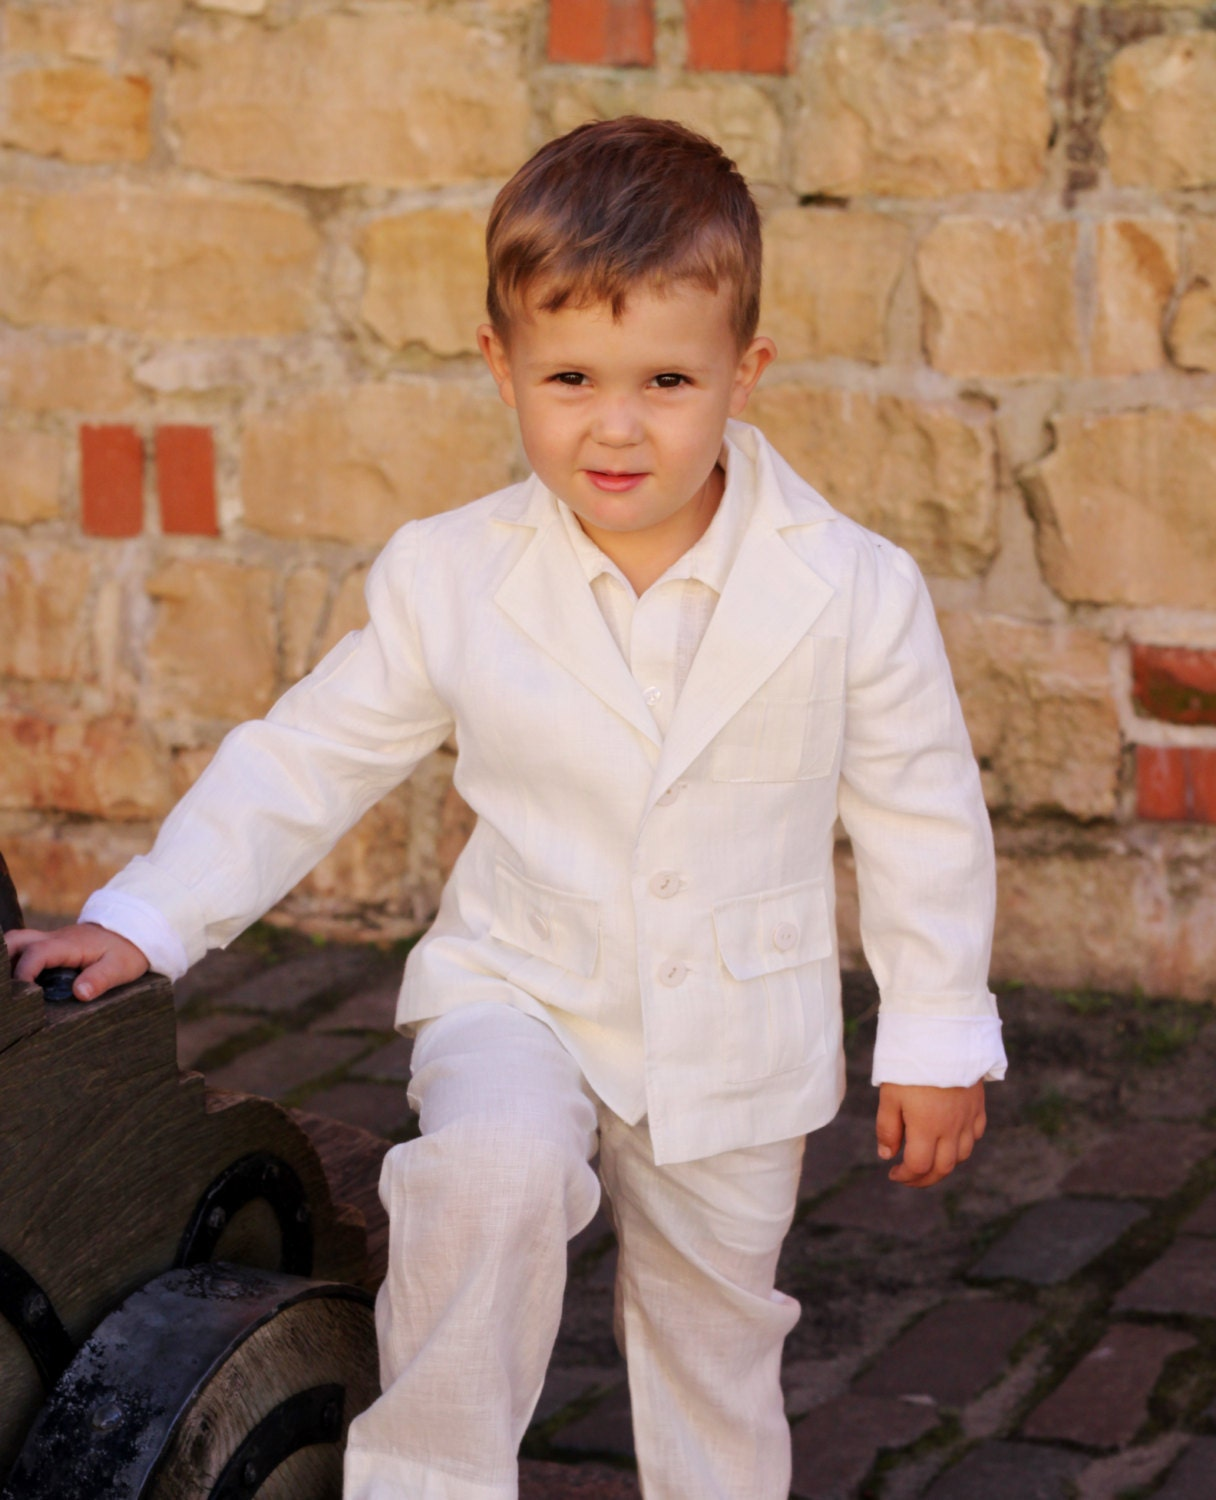 Awesome Toddler Suits For Wedding Contemporary - Styles & Ideas ...